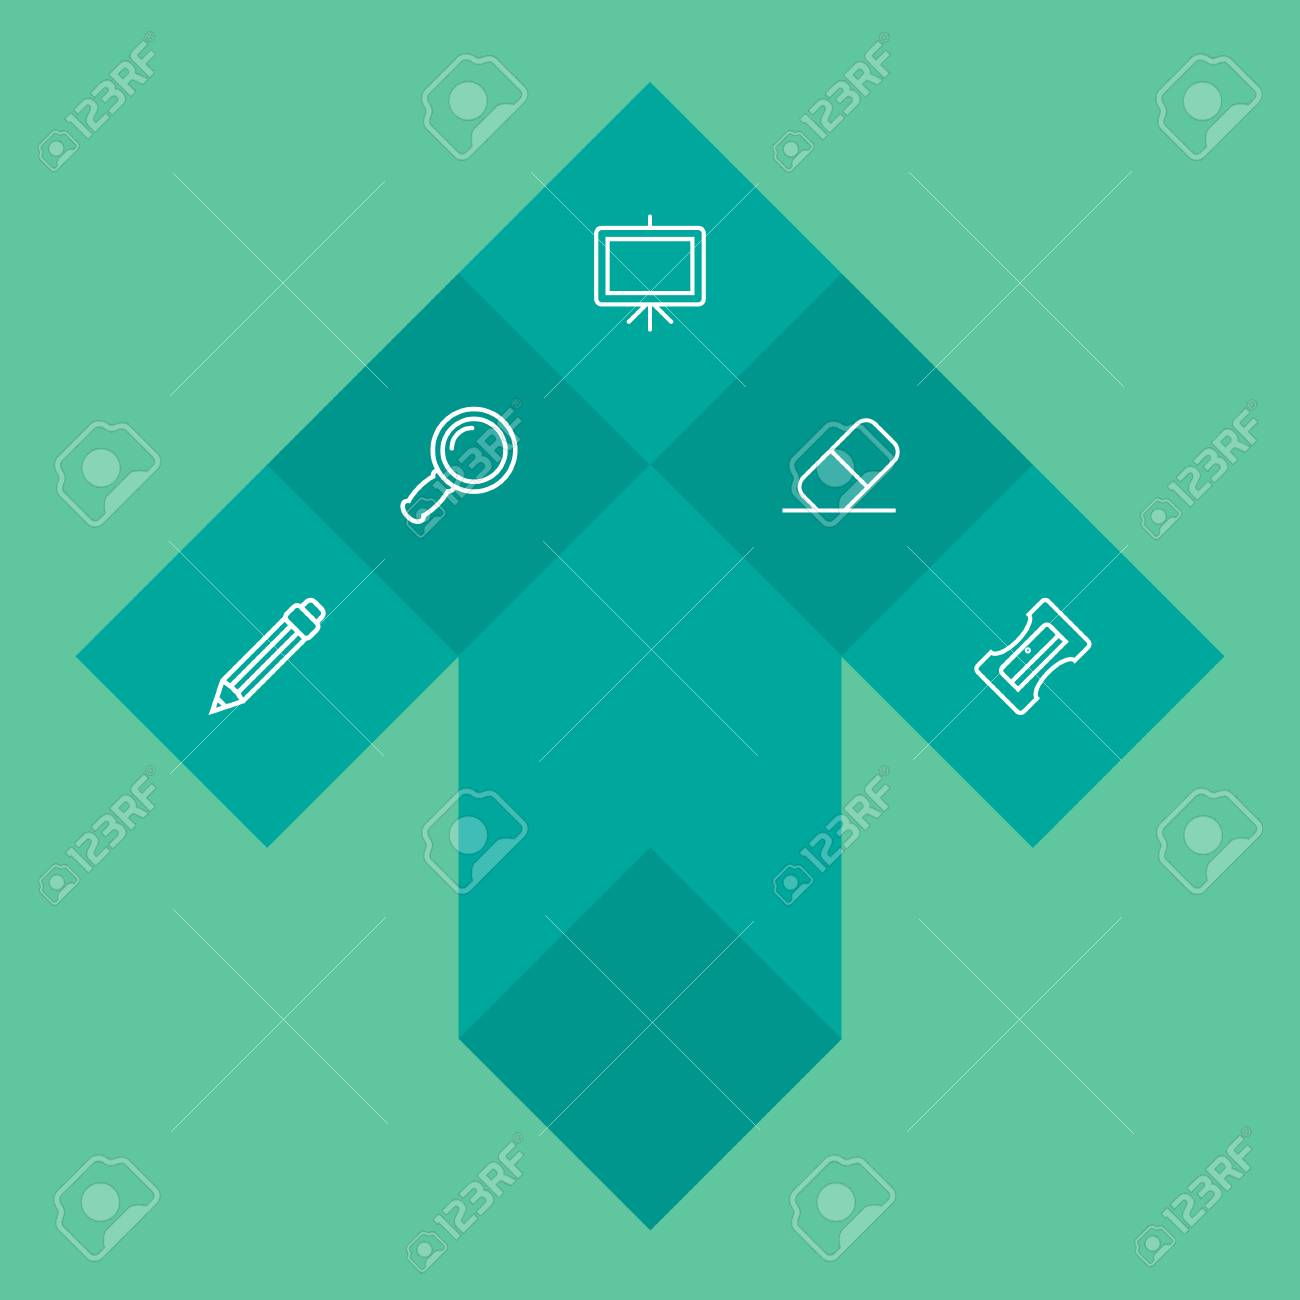 Set Of 5 Stationery Outline Icons Set Collection Of Zoom Glasses,